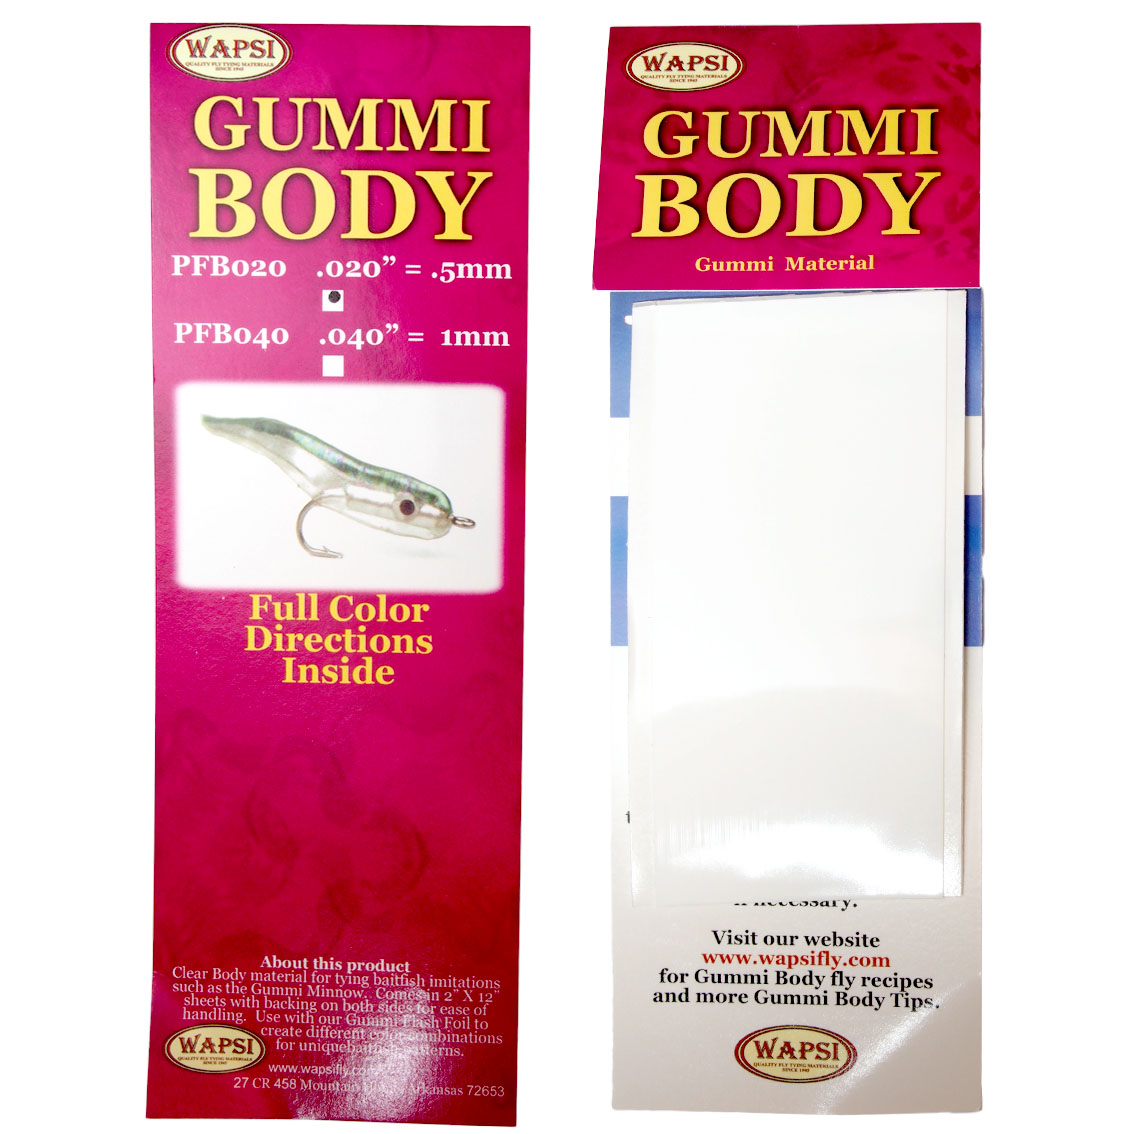 Gummi Body Wapsi